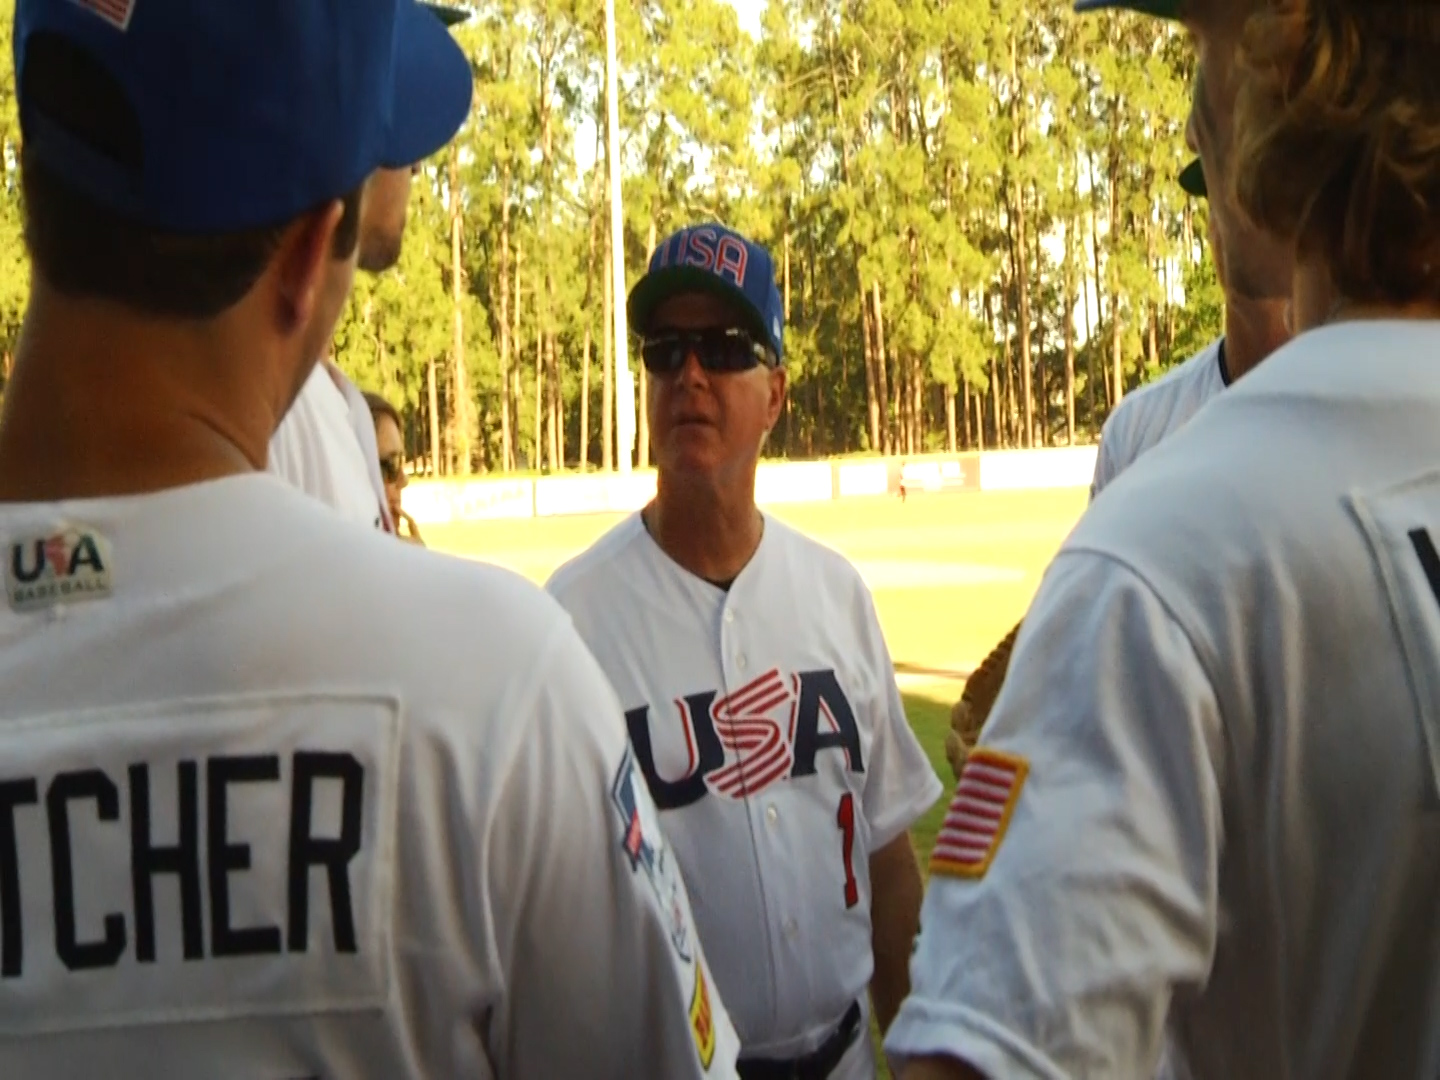 paul mainieri team usa1_1530934422453.jpg-3156058.jpg